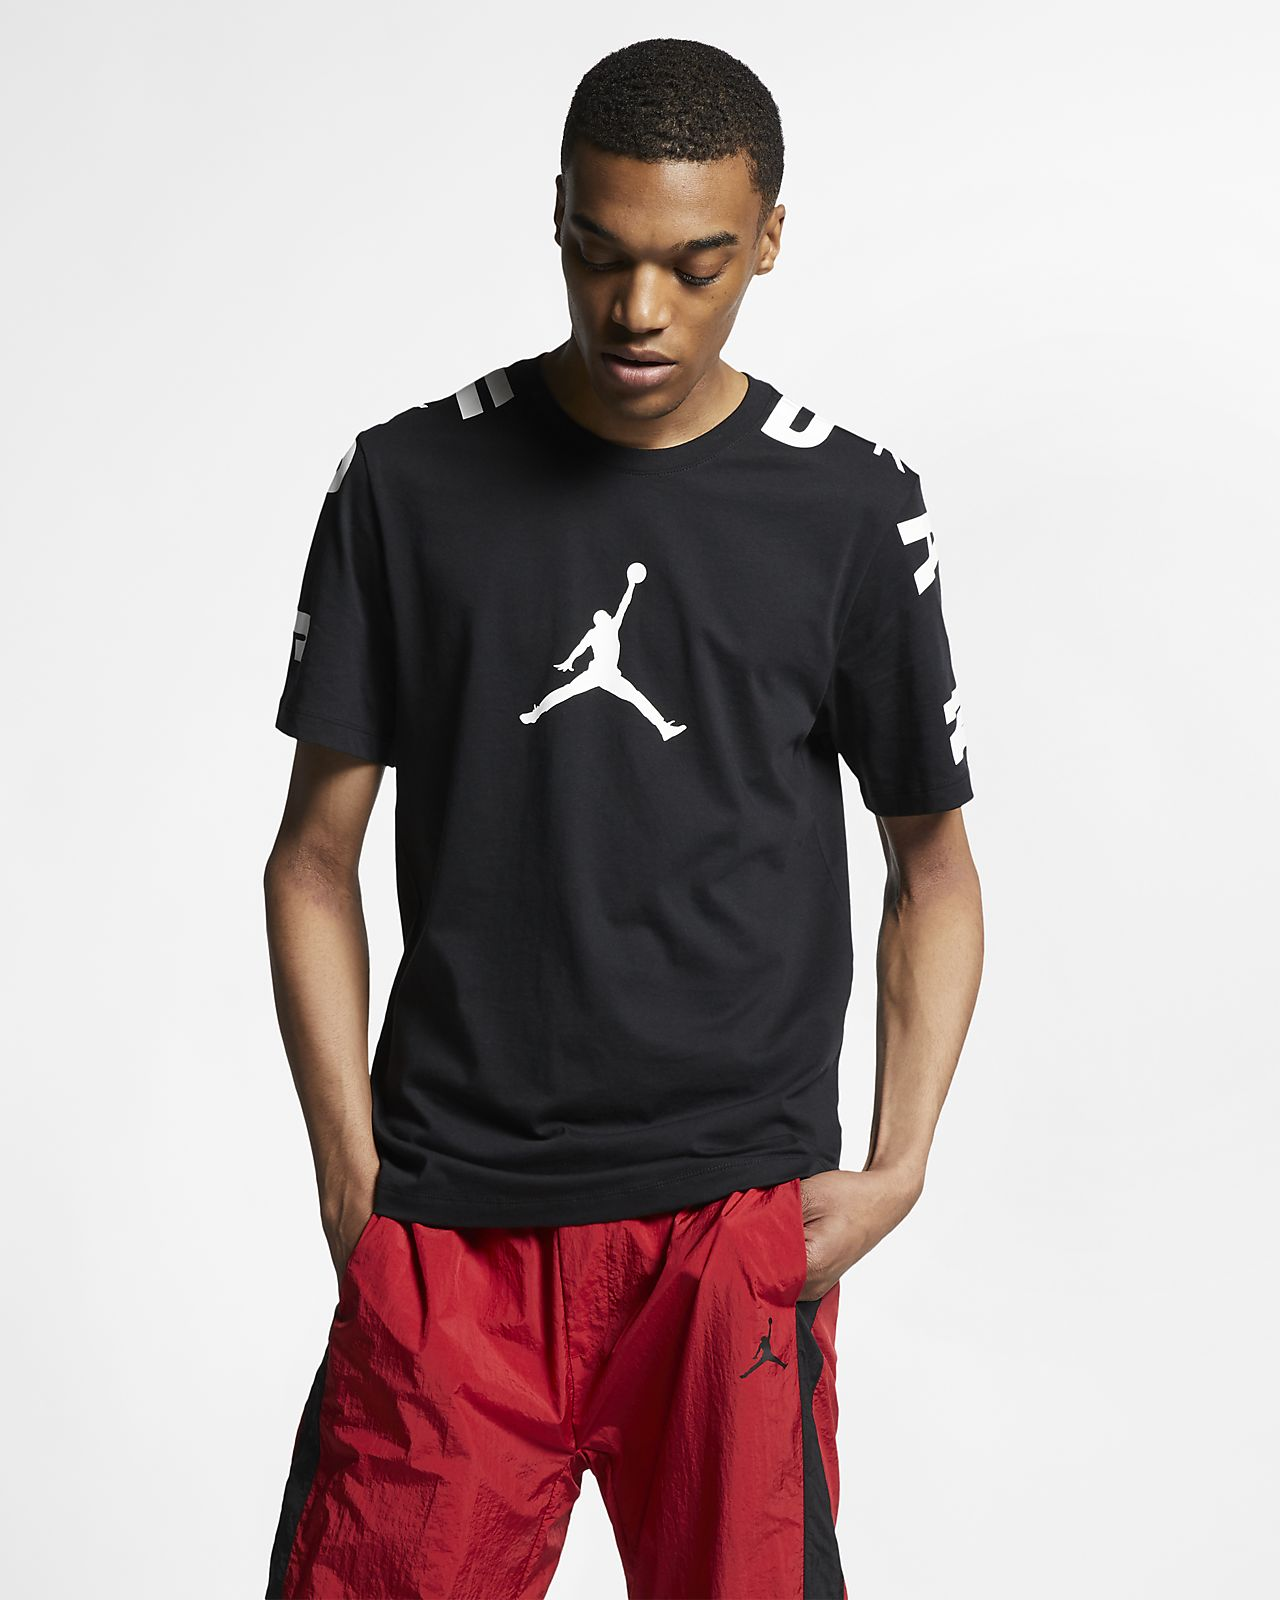 3f1be1e5b74bd9 Jordan Stretch 23 Men s T-Shirt. Nike.com GB